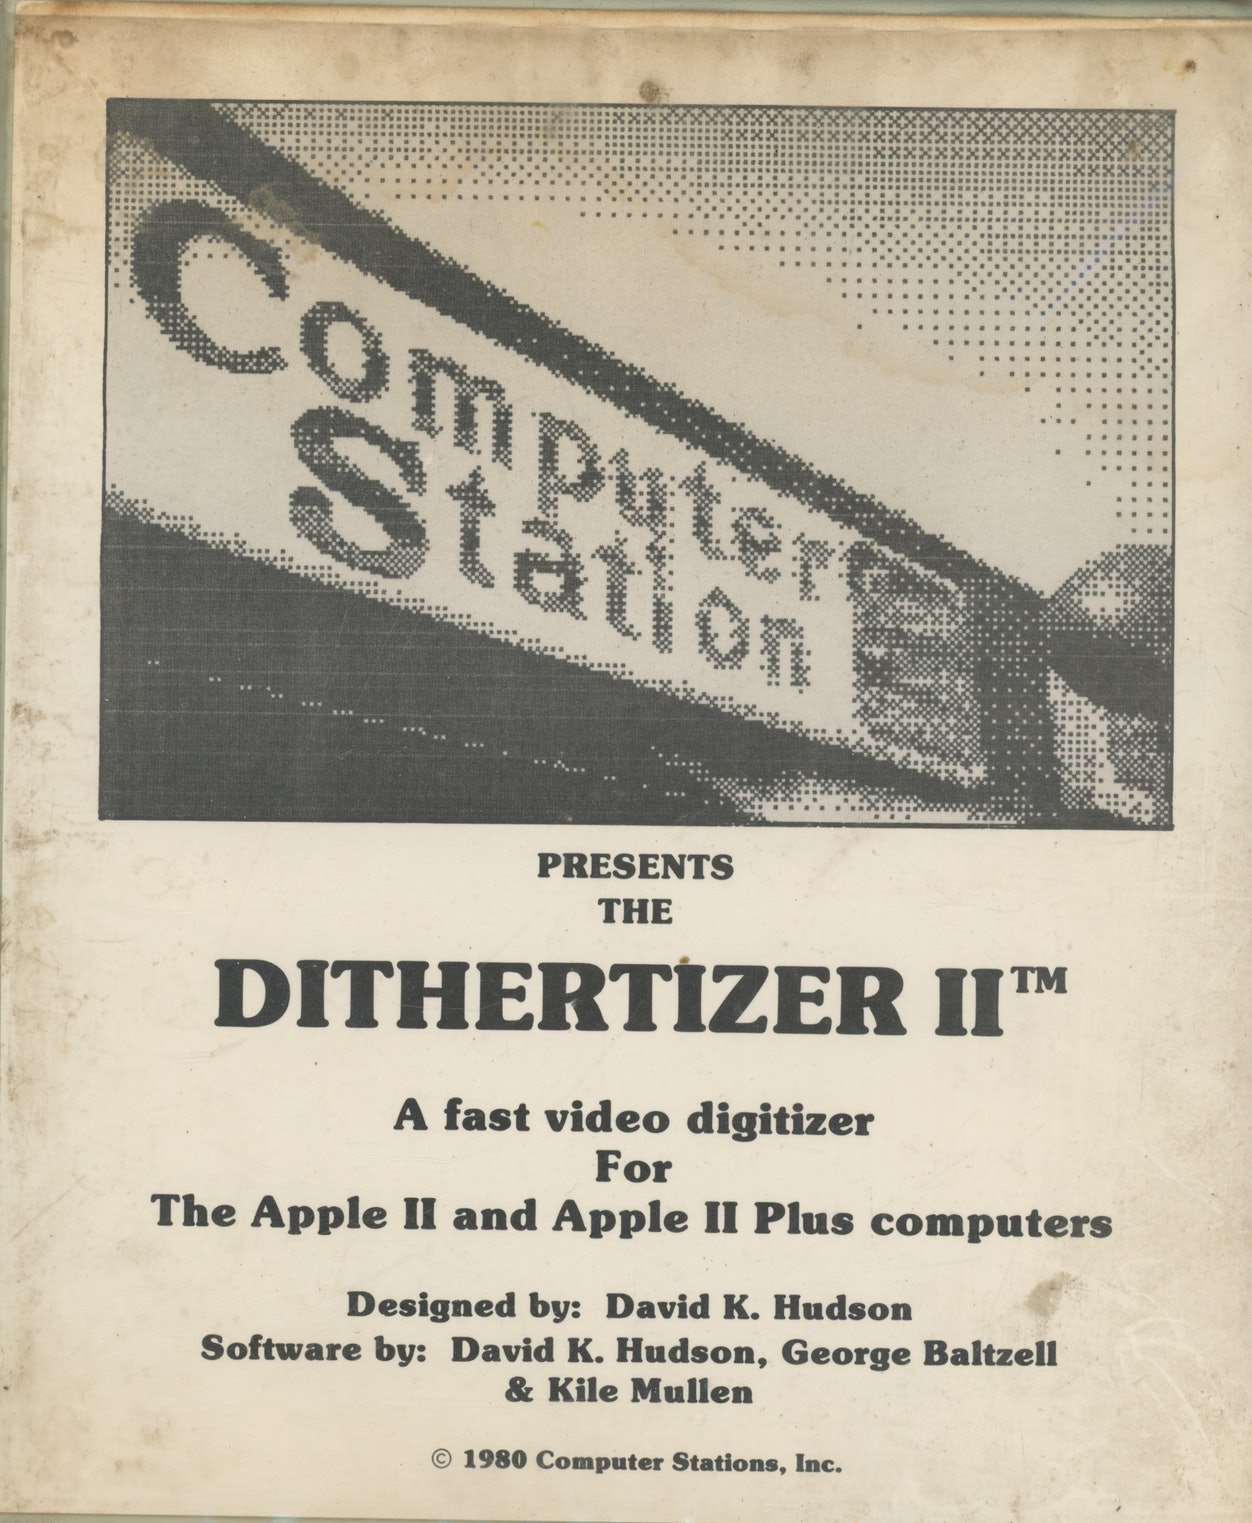 Computer Station Presents the DITHERTIZER II A Fast Video Digitizer For The Apple II and Apple II Plus Computers